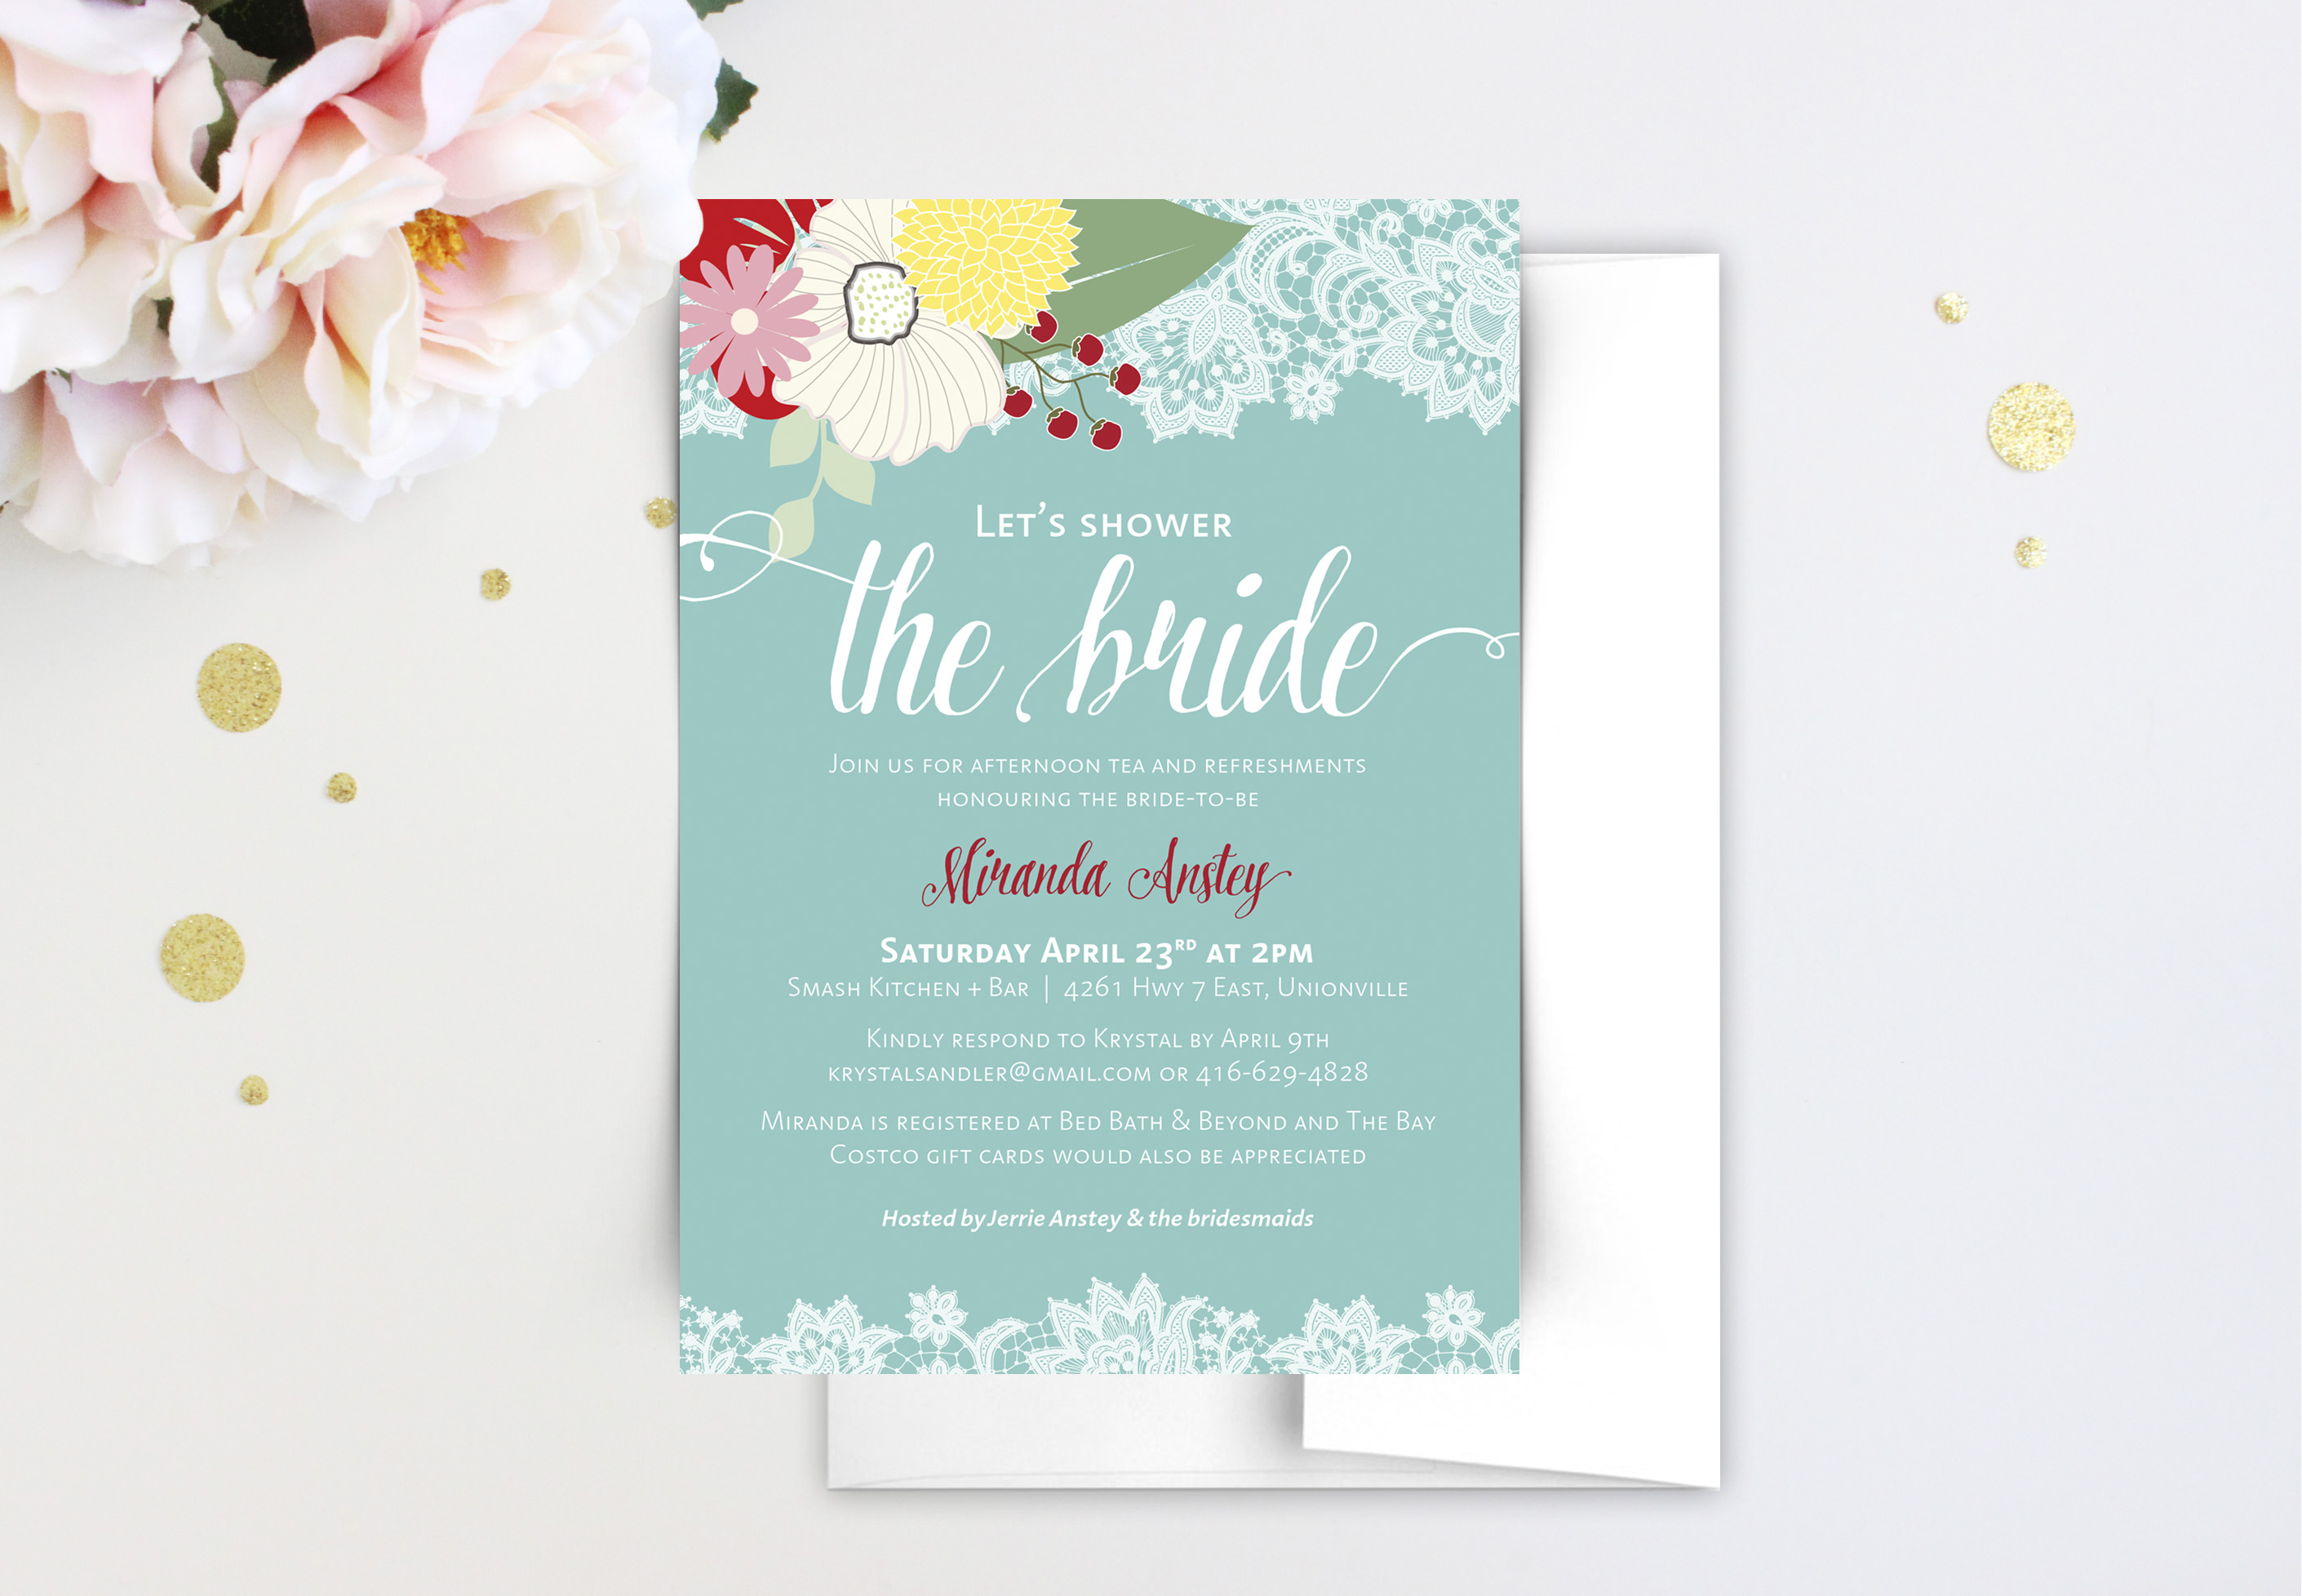 bridal shower invitations, beautiful bridal shower invitations, lace bridal shower invitations, custom bridal shower invitations, bridal shower cards, floral bridal invitations, elegant bridal invitations